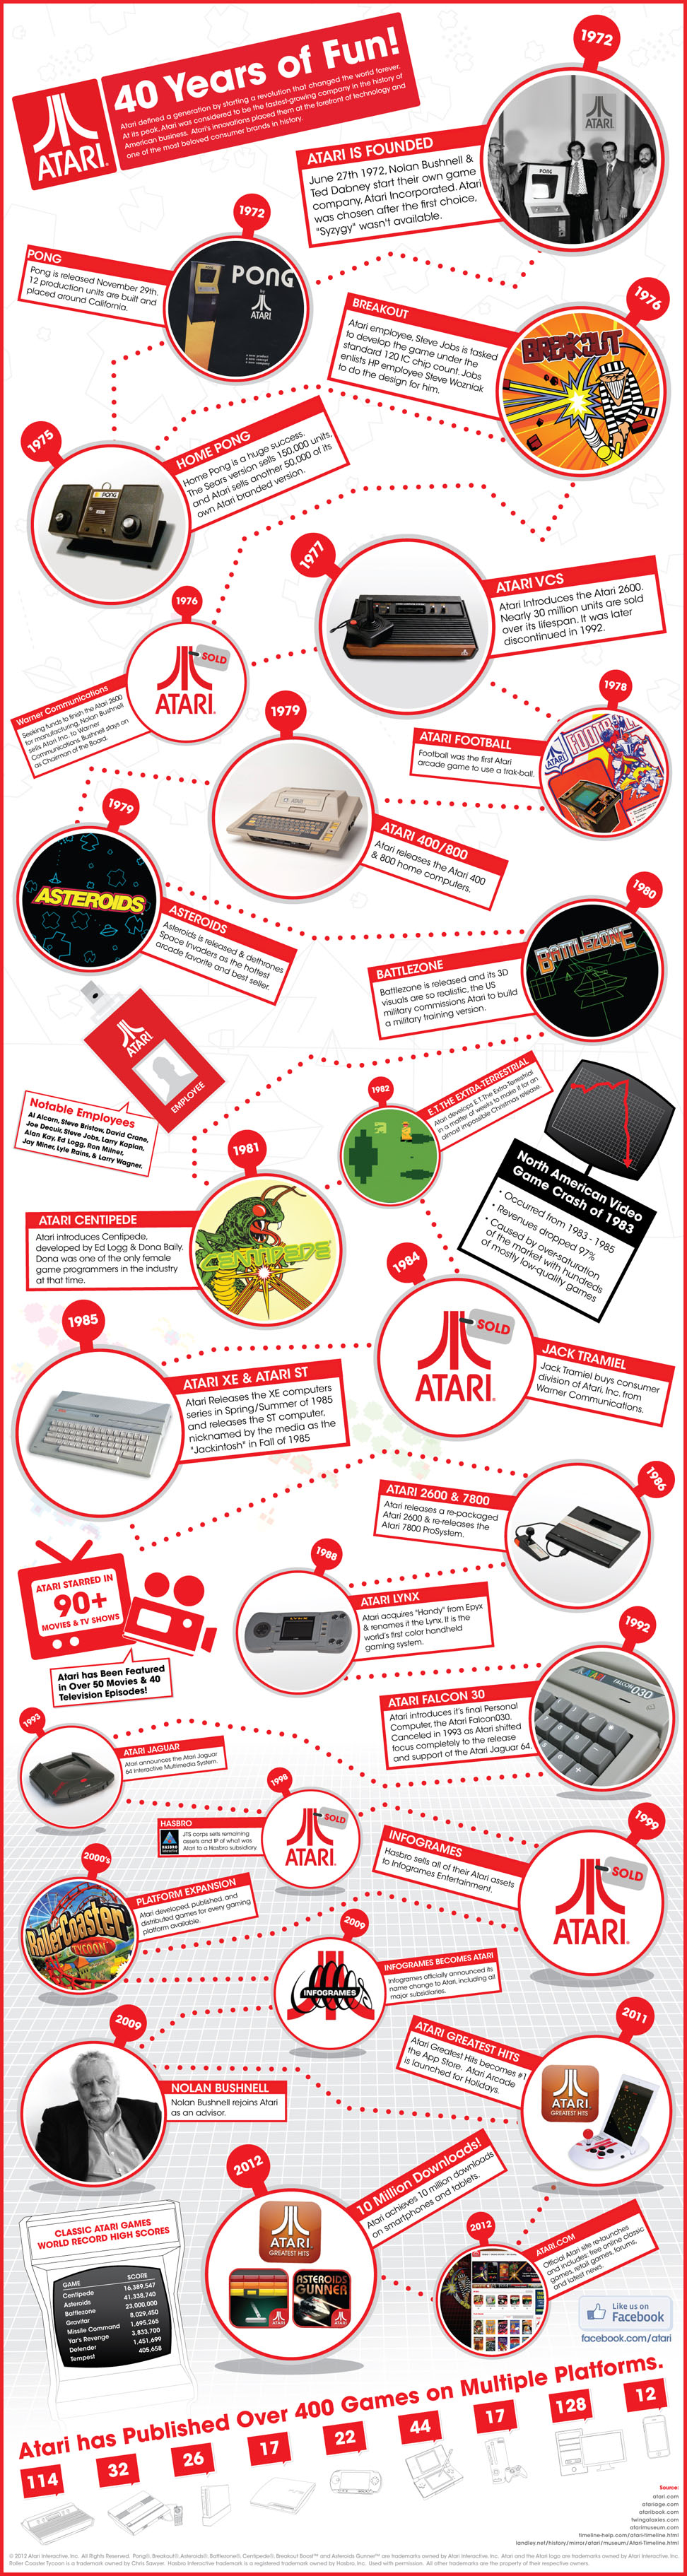 http://infographicjournal.com/atari-40-years-of-fun/